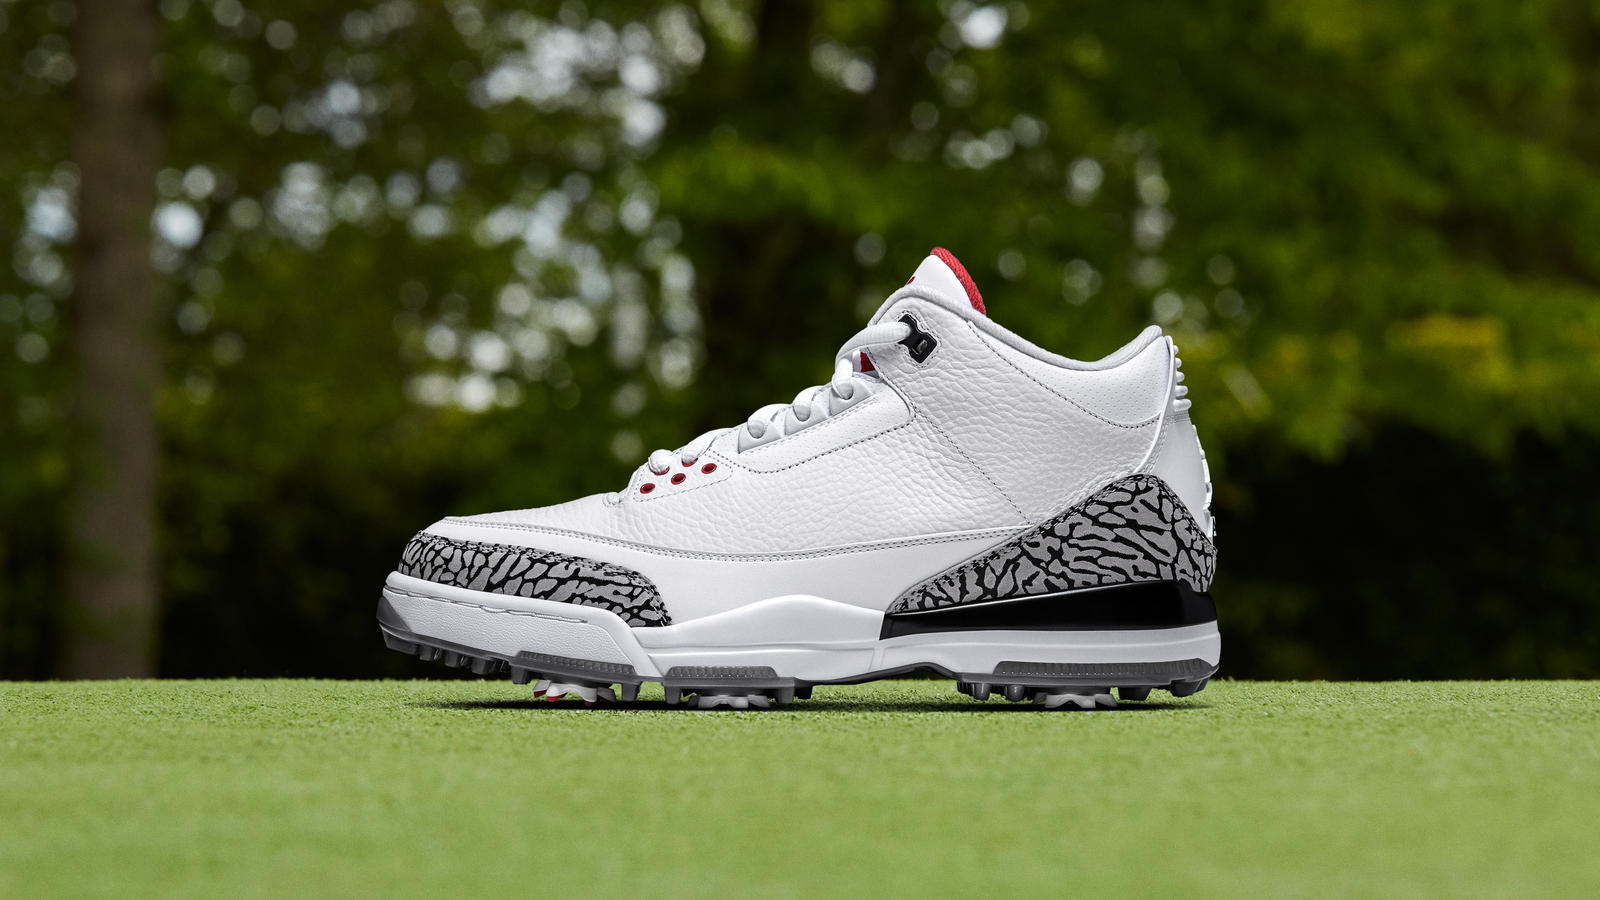 Create Your Own Nike Golf Shoes